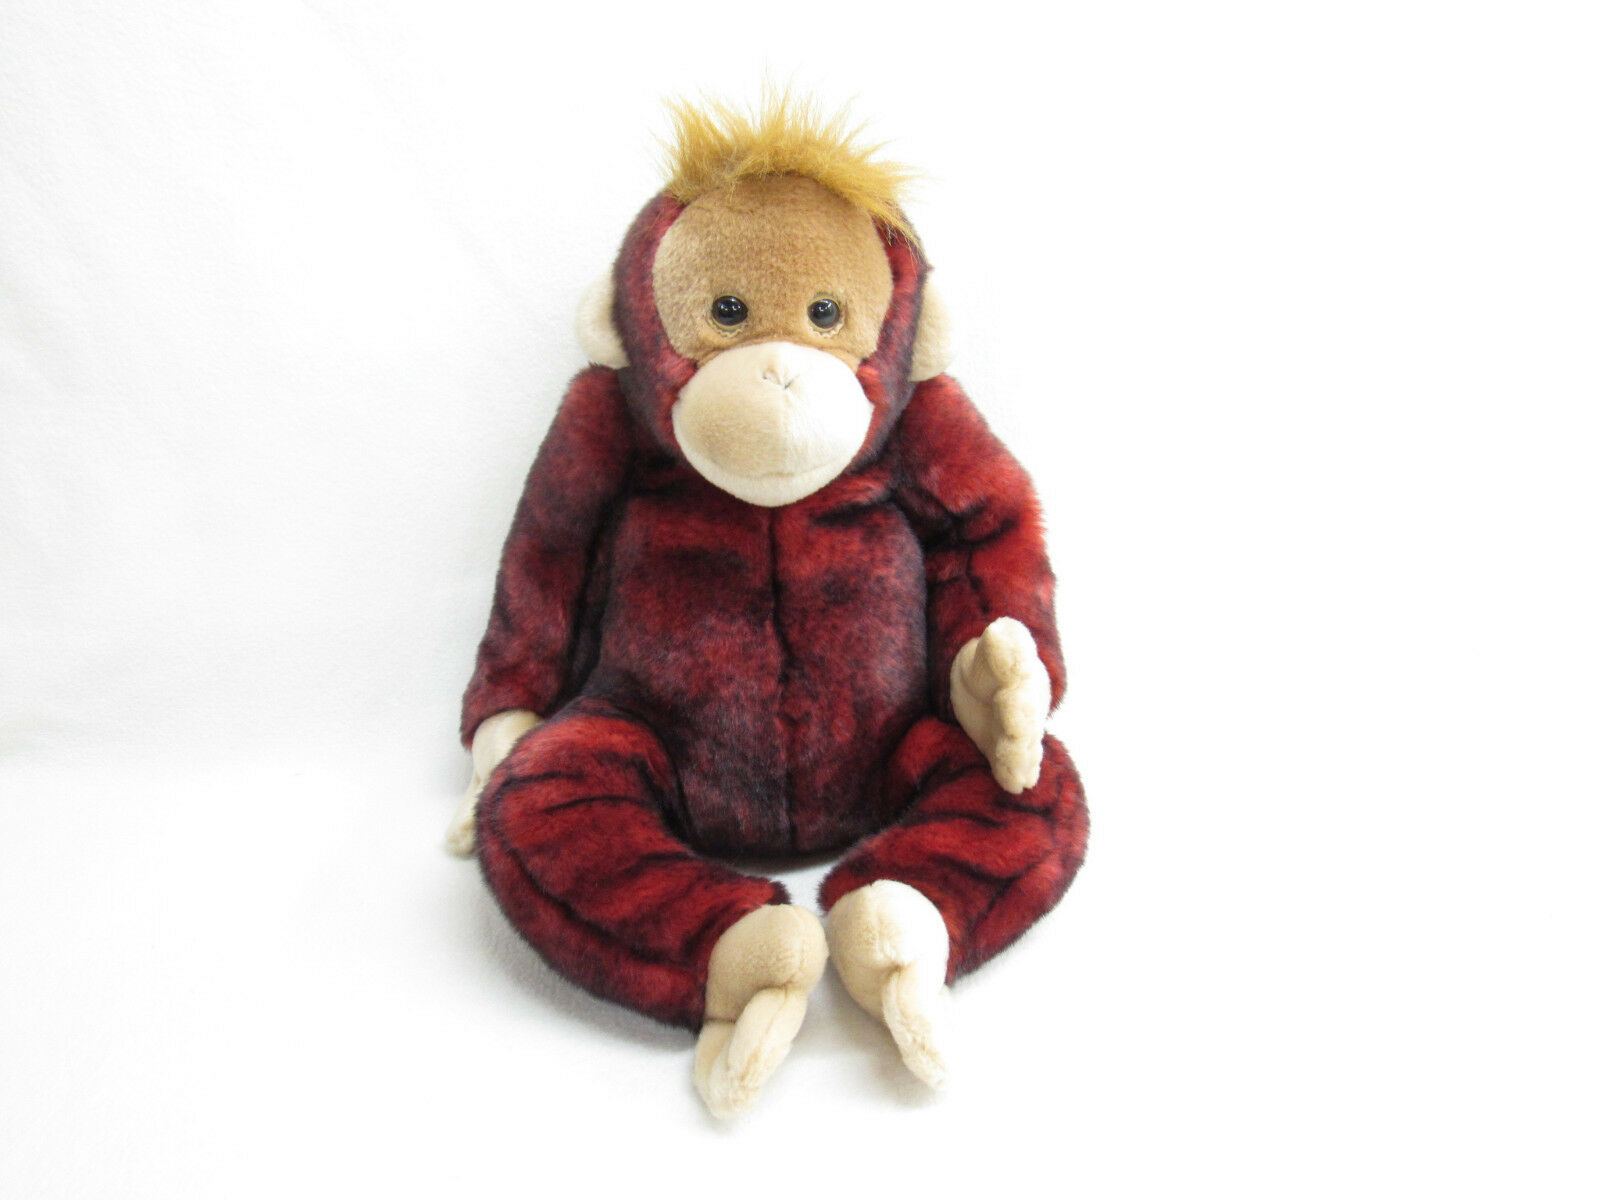 2000 LARGE TY MONKEY ORANGUTAN PLUSH RED 20 INCHES